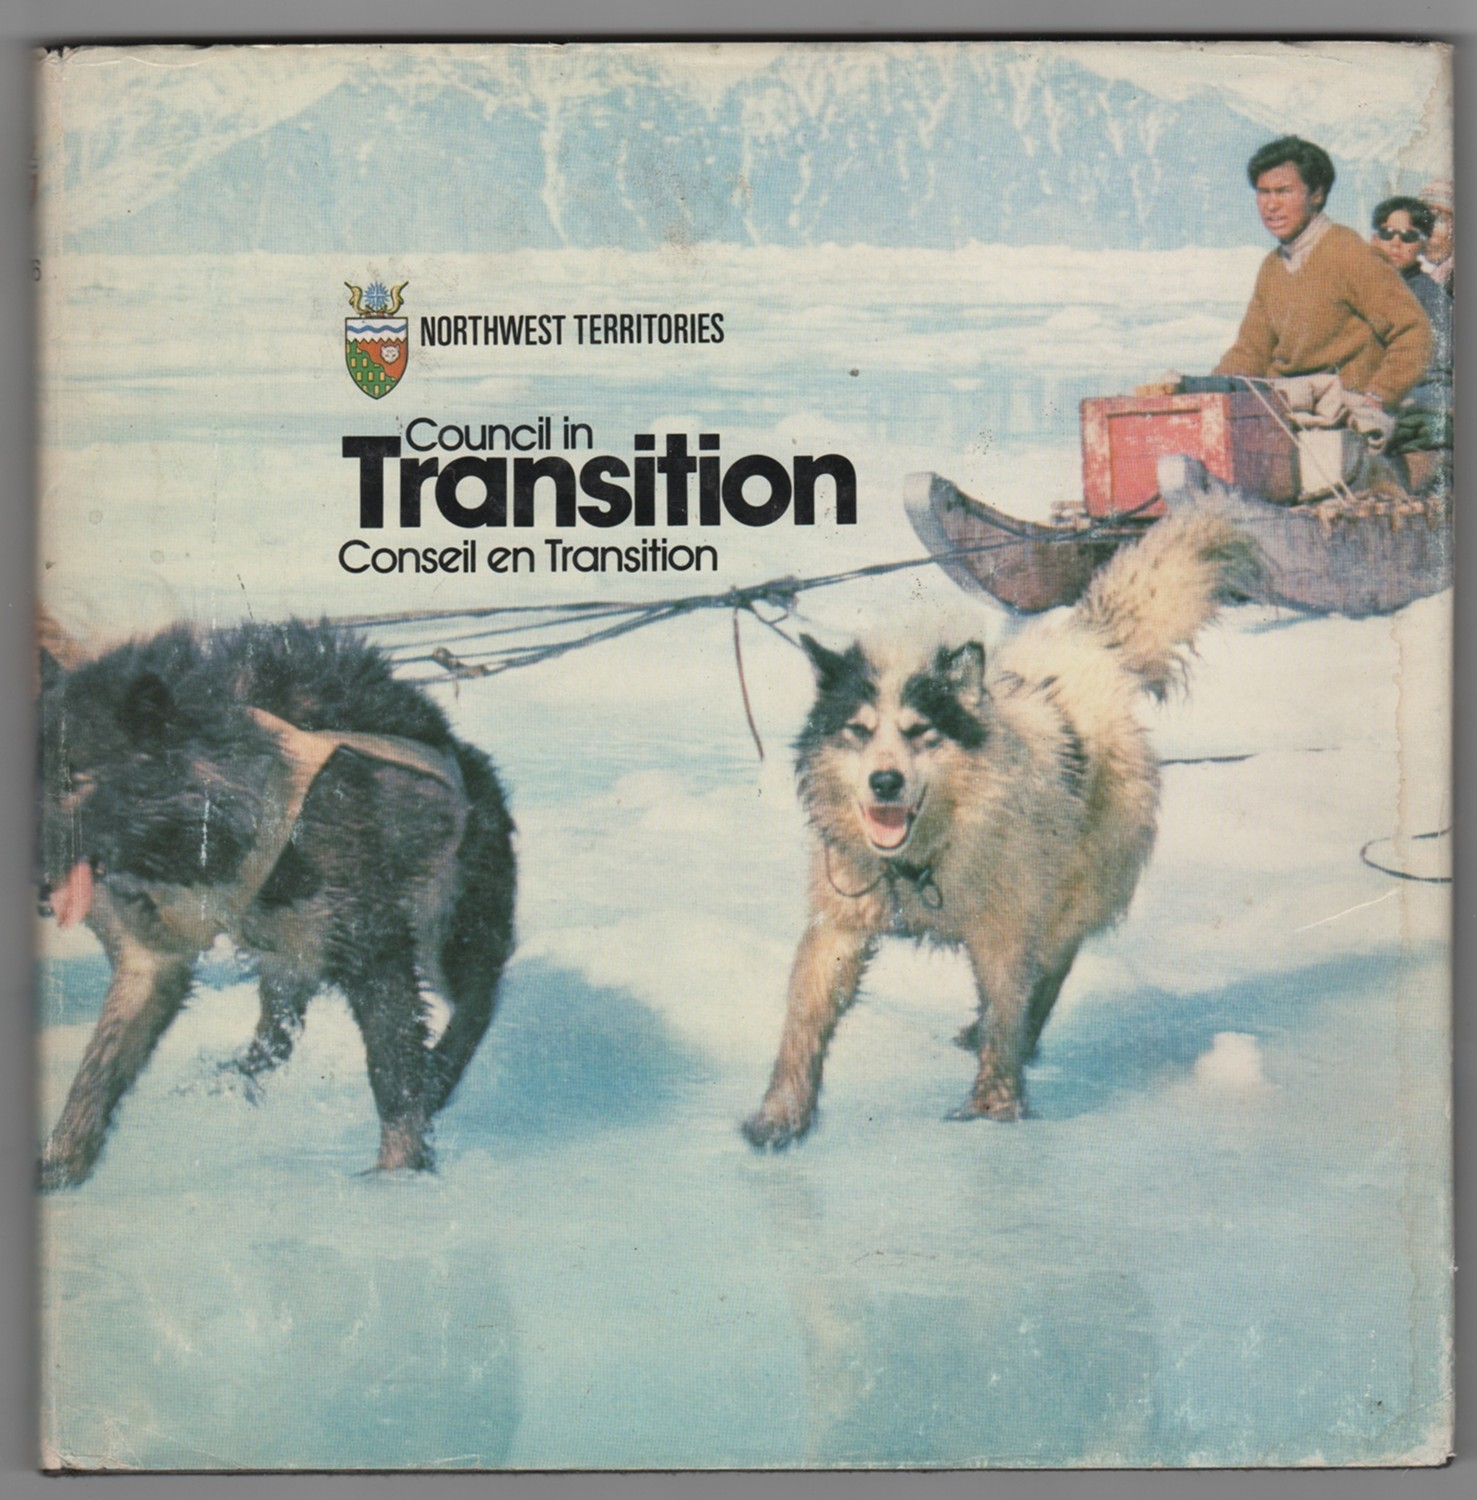 Image for Annual Report of the Government of the Northwest Territories, Council in Transition 1976/ Conseil en transition, Rapport annuel du gouvernement des Territoires du Nord-Ouest